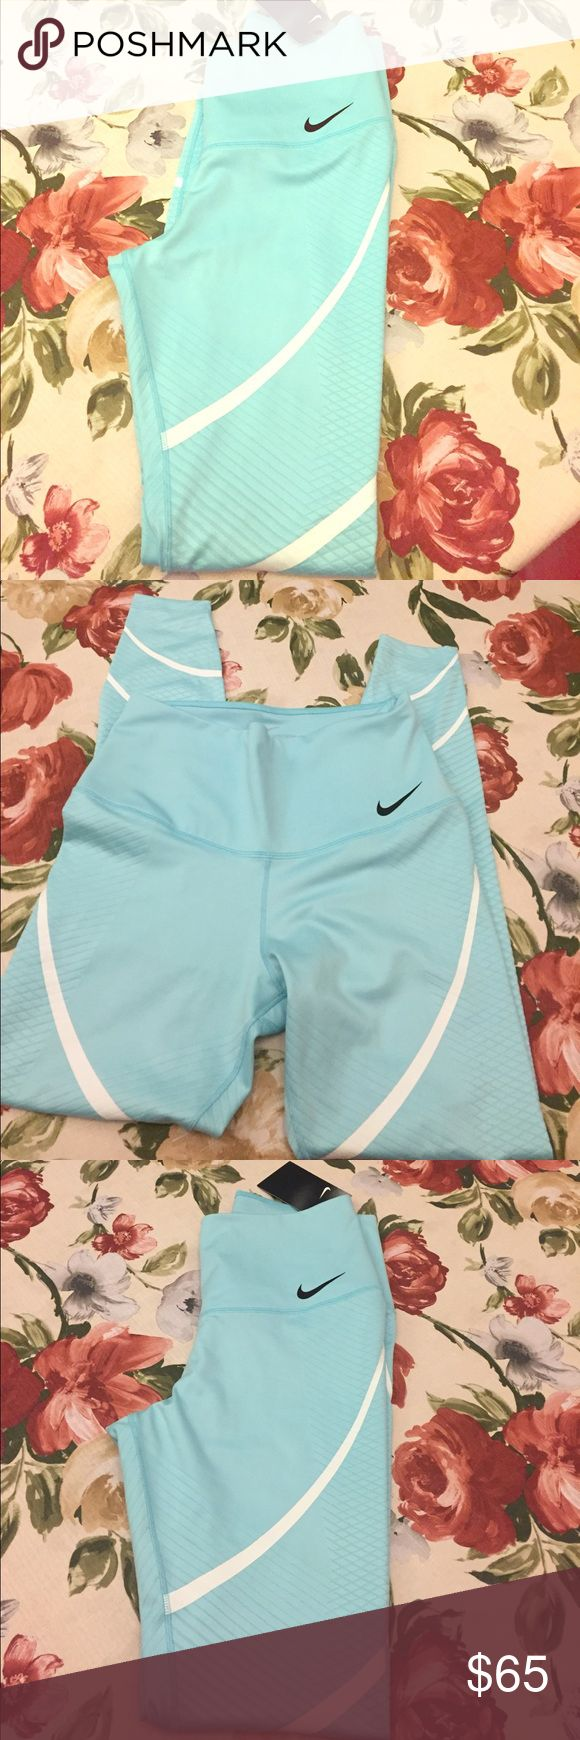 Bright blue/baby blue Nike leggings Never worn with tags attached Nike leggings, hope you see the weave pattern running down the side of the putter thigh part. Nike Pants Leggings